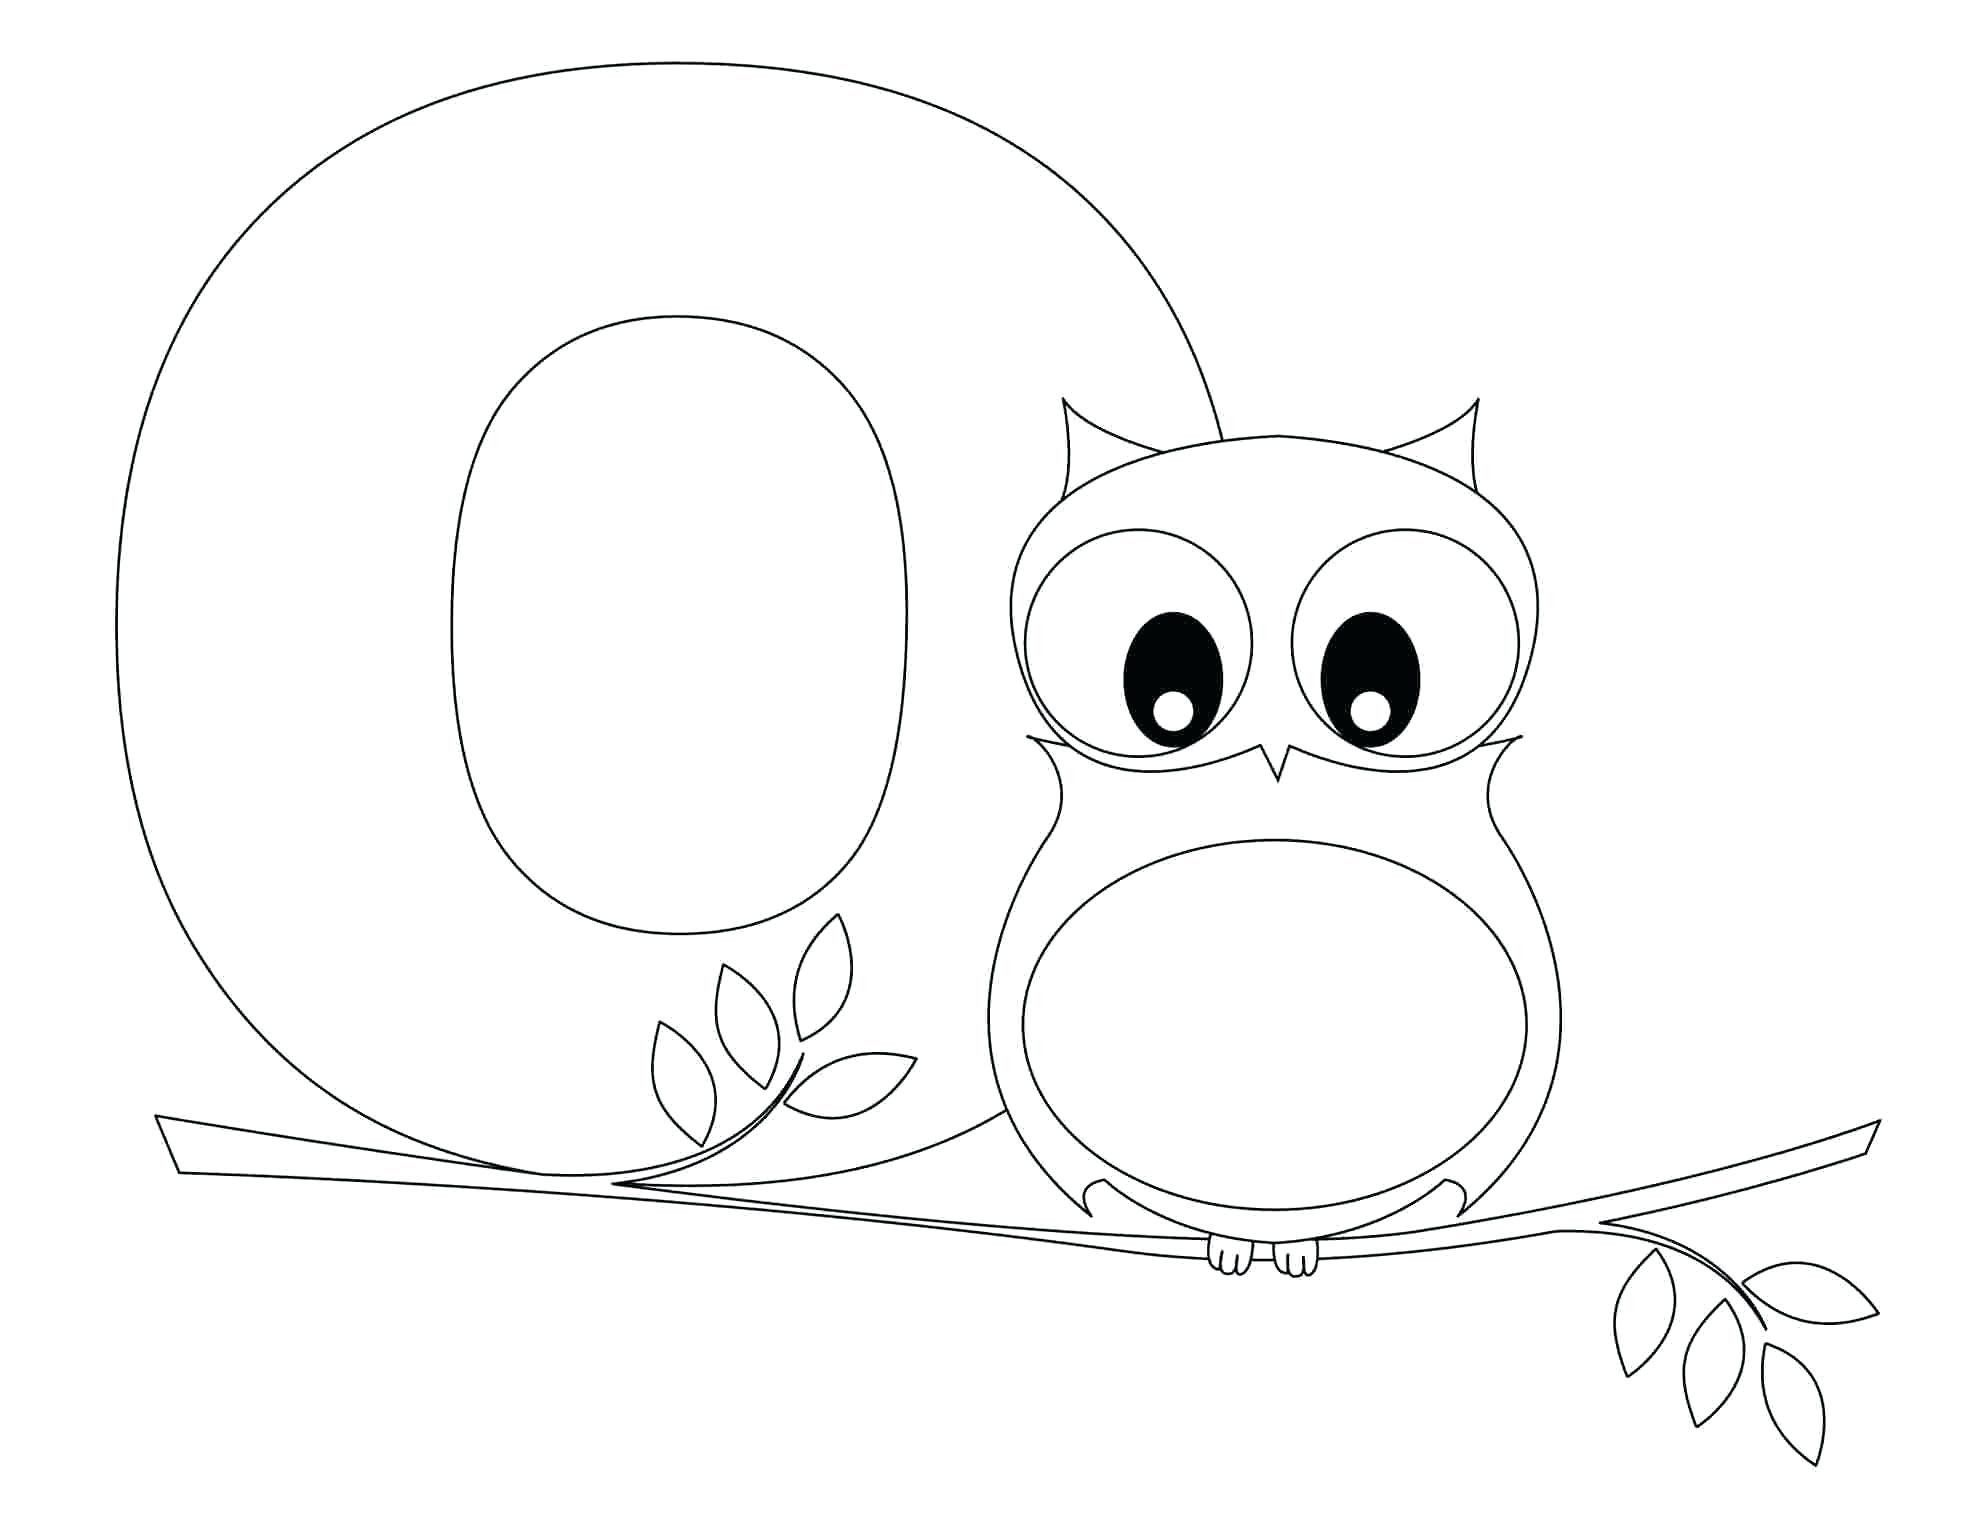 Printable Coloring Pages For Toddlers Alphabet Worksheets Coloring Pages Outstanding Easy For Kids In 2020 Owl Coloring Pages Animal Alphabet Letters Alphabet Coloring [ 1527 x 1963 Pixel ]